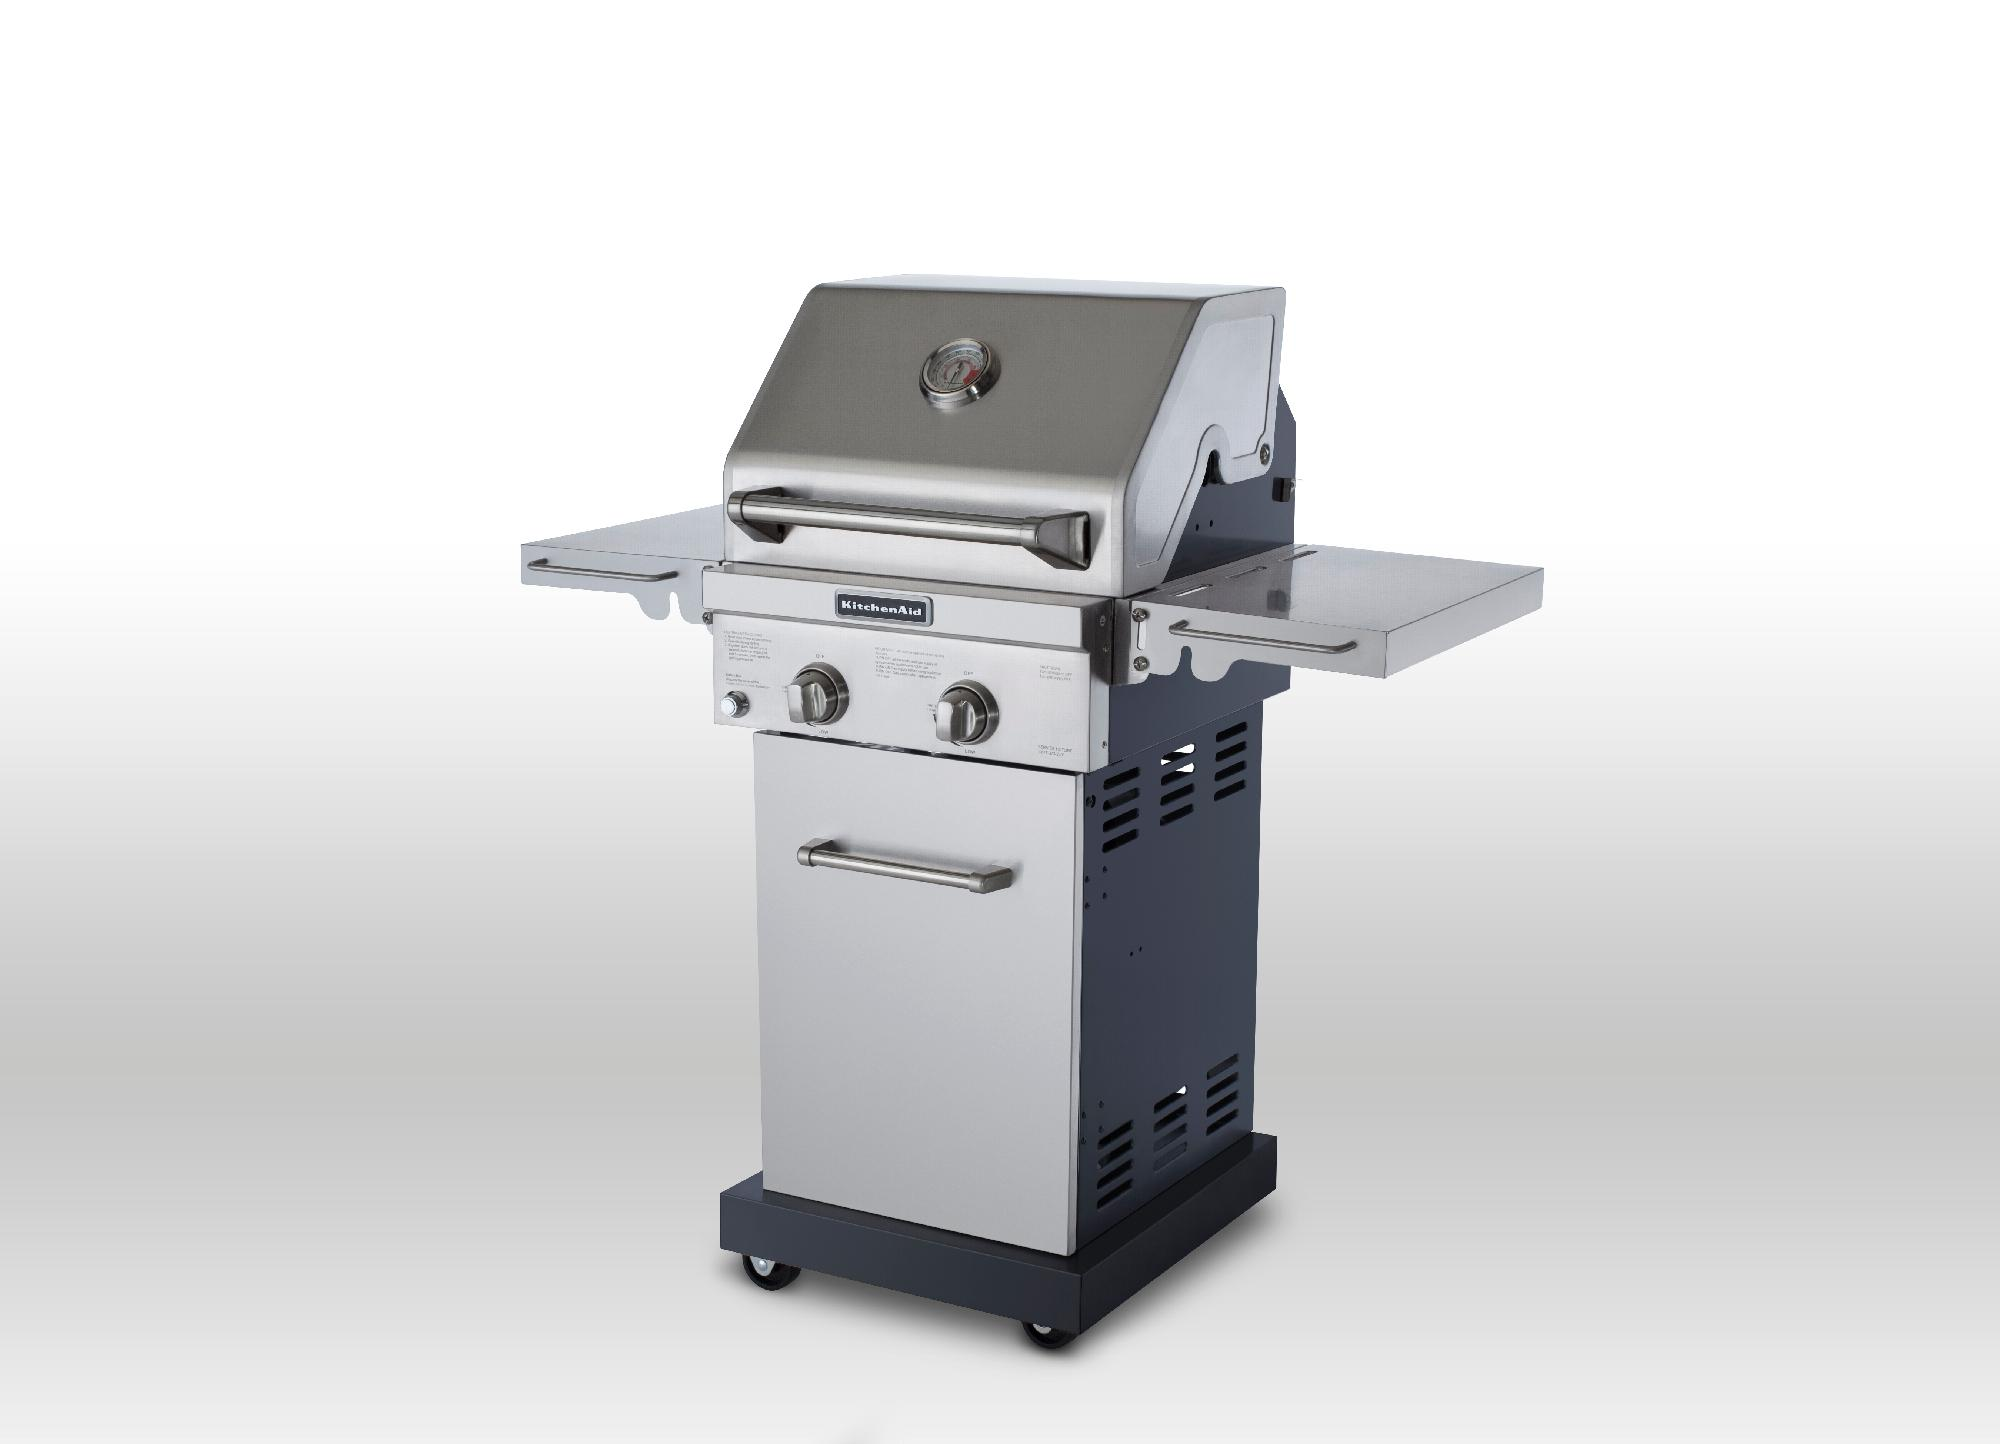 KitchenAid 2 Burner Gas Grill  Outdoor Living  Grills